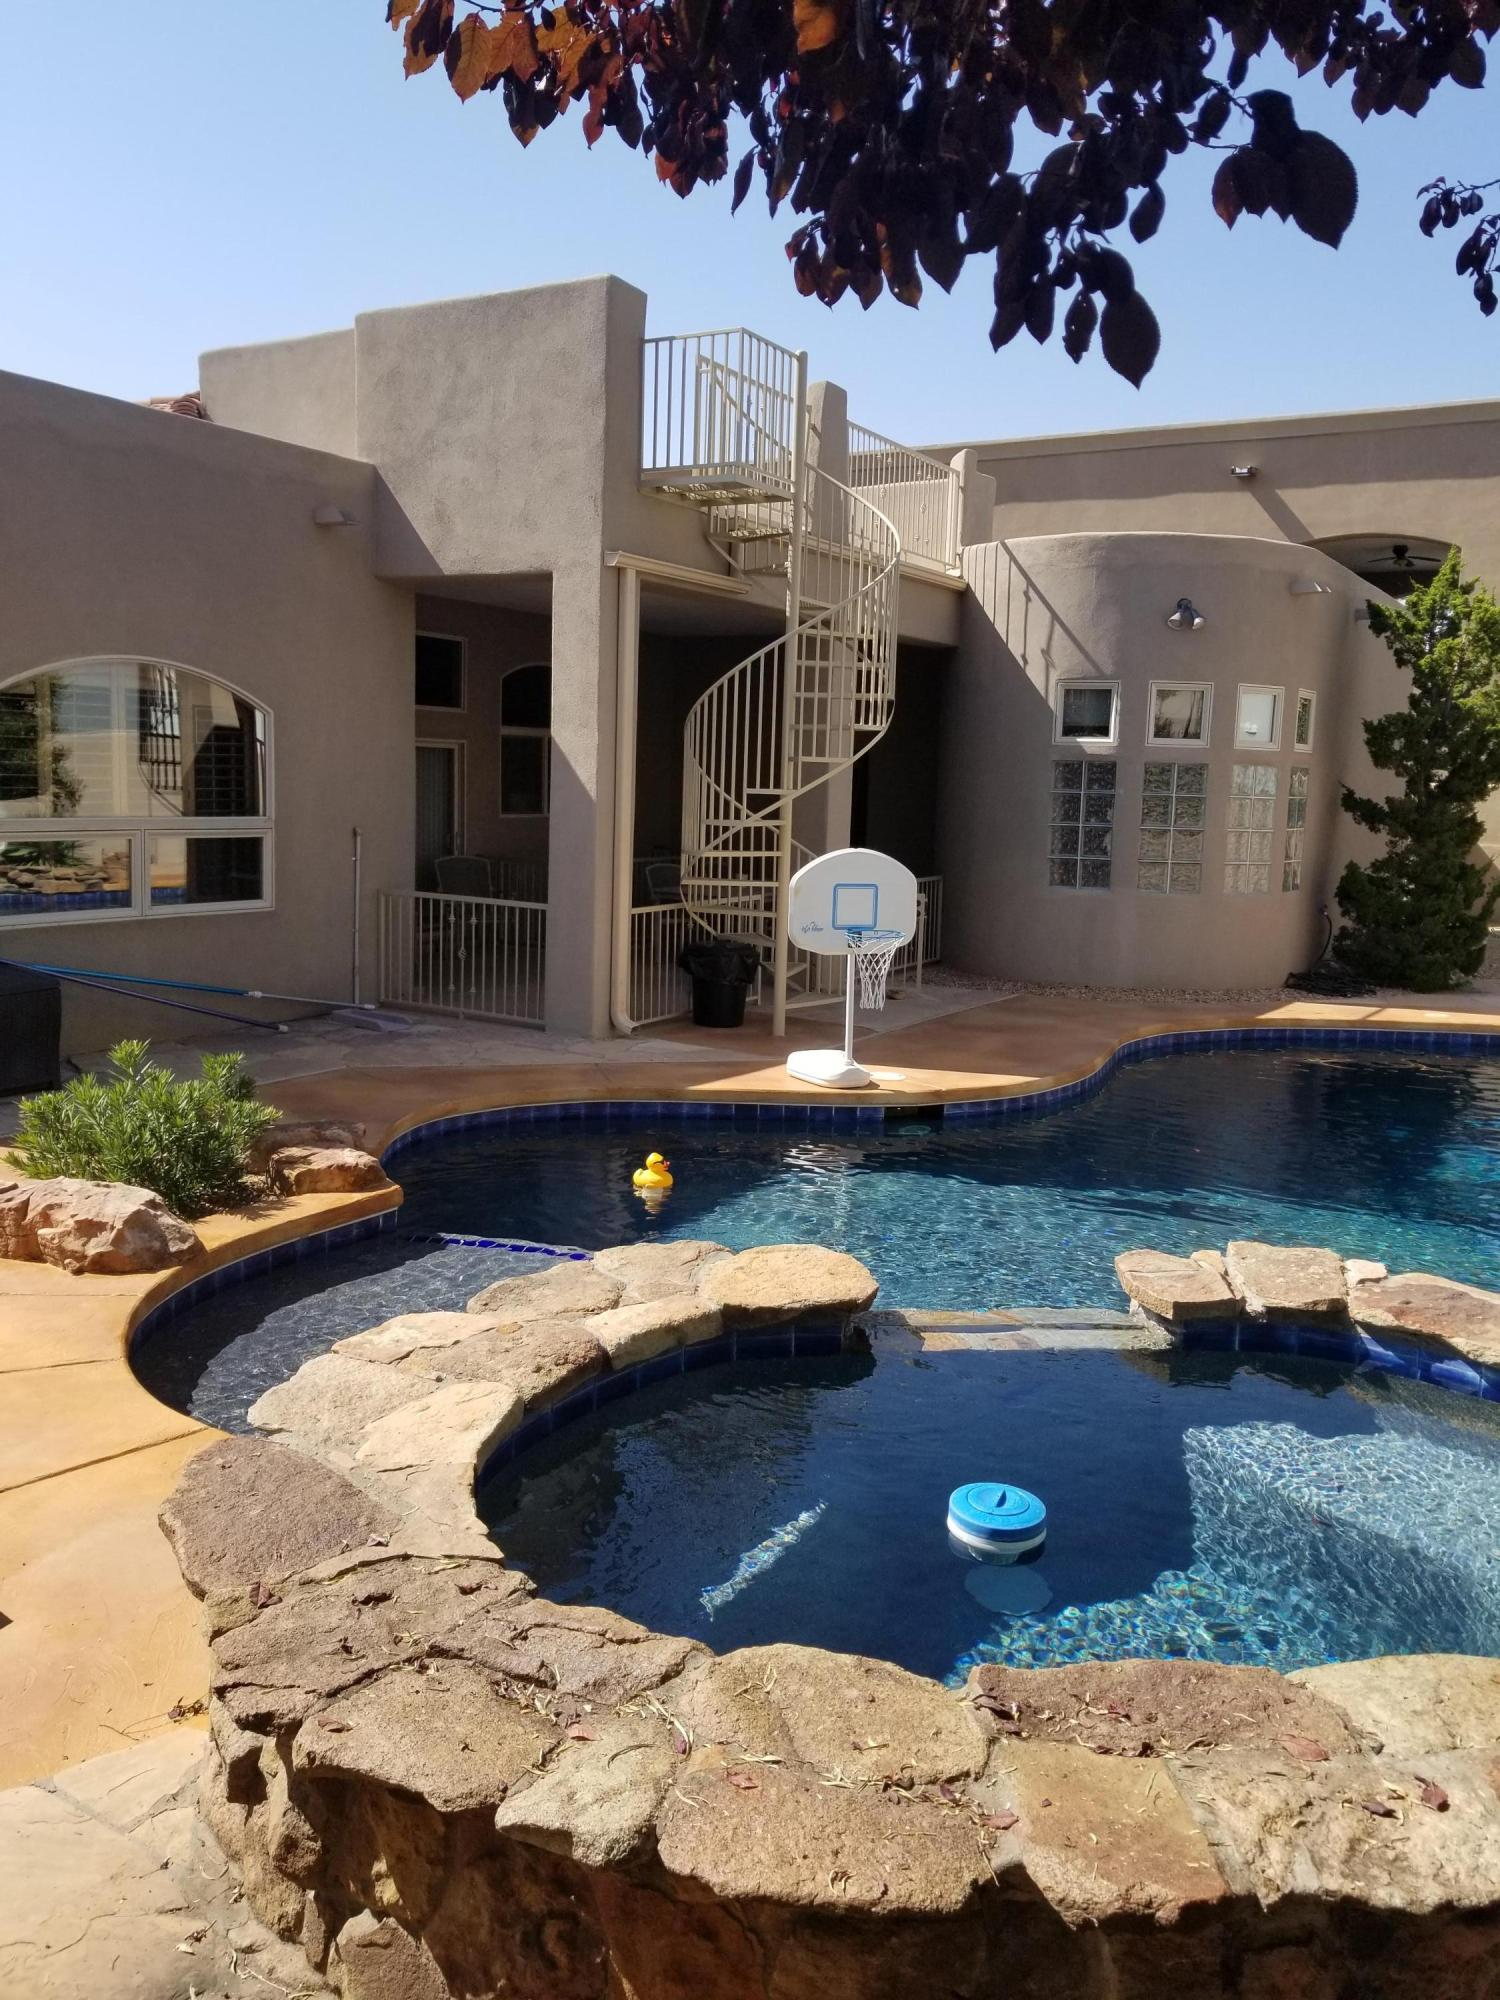 Gorgeous House w/ great Layout, Spacious, & backyard Pool/Spa Paradise! (With a Xeriscaped/Flagstone/Dog Run area). Gated Community! North ABQ Acres Area & Schools, w/ views of the Mountains!...Tile in All Bathrooms, Showers, Kithcen, Hallway, and Newer Tile in Dining Room that replaced carpet in 2016...Granite counters in Kitchen & Island...Fresh Paint throughout Sept. 2020...Newer Carpet main level 2016...New pool deck surface less than 1 yr...Newer Pool Heater & filter tank 2015...Newer Main Refrigerated A/C unit 2015...Newer Water Heater 2018...Newer Washer 2018...All Pool Equipment, Master Bath Vanity Mirror, & All Appliances convey, including second fridge/freezer in garage.